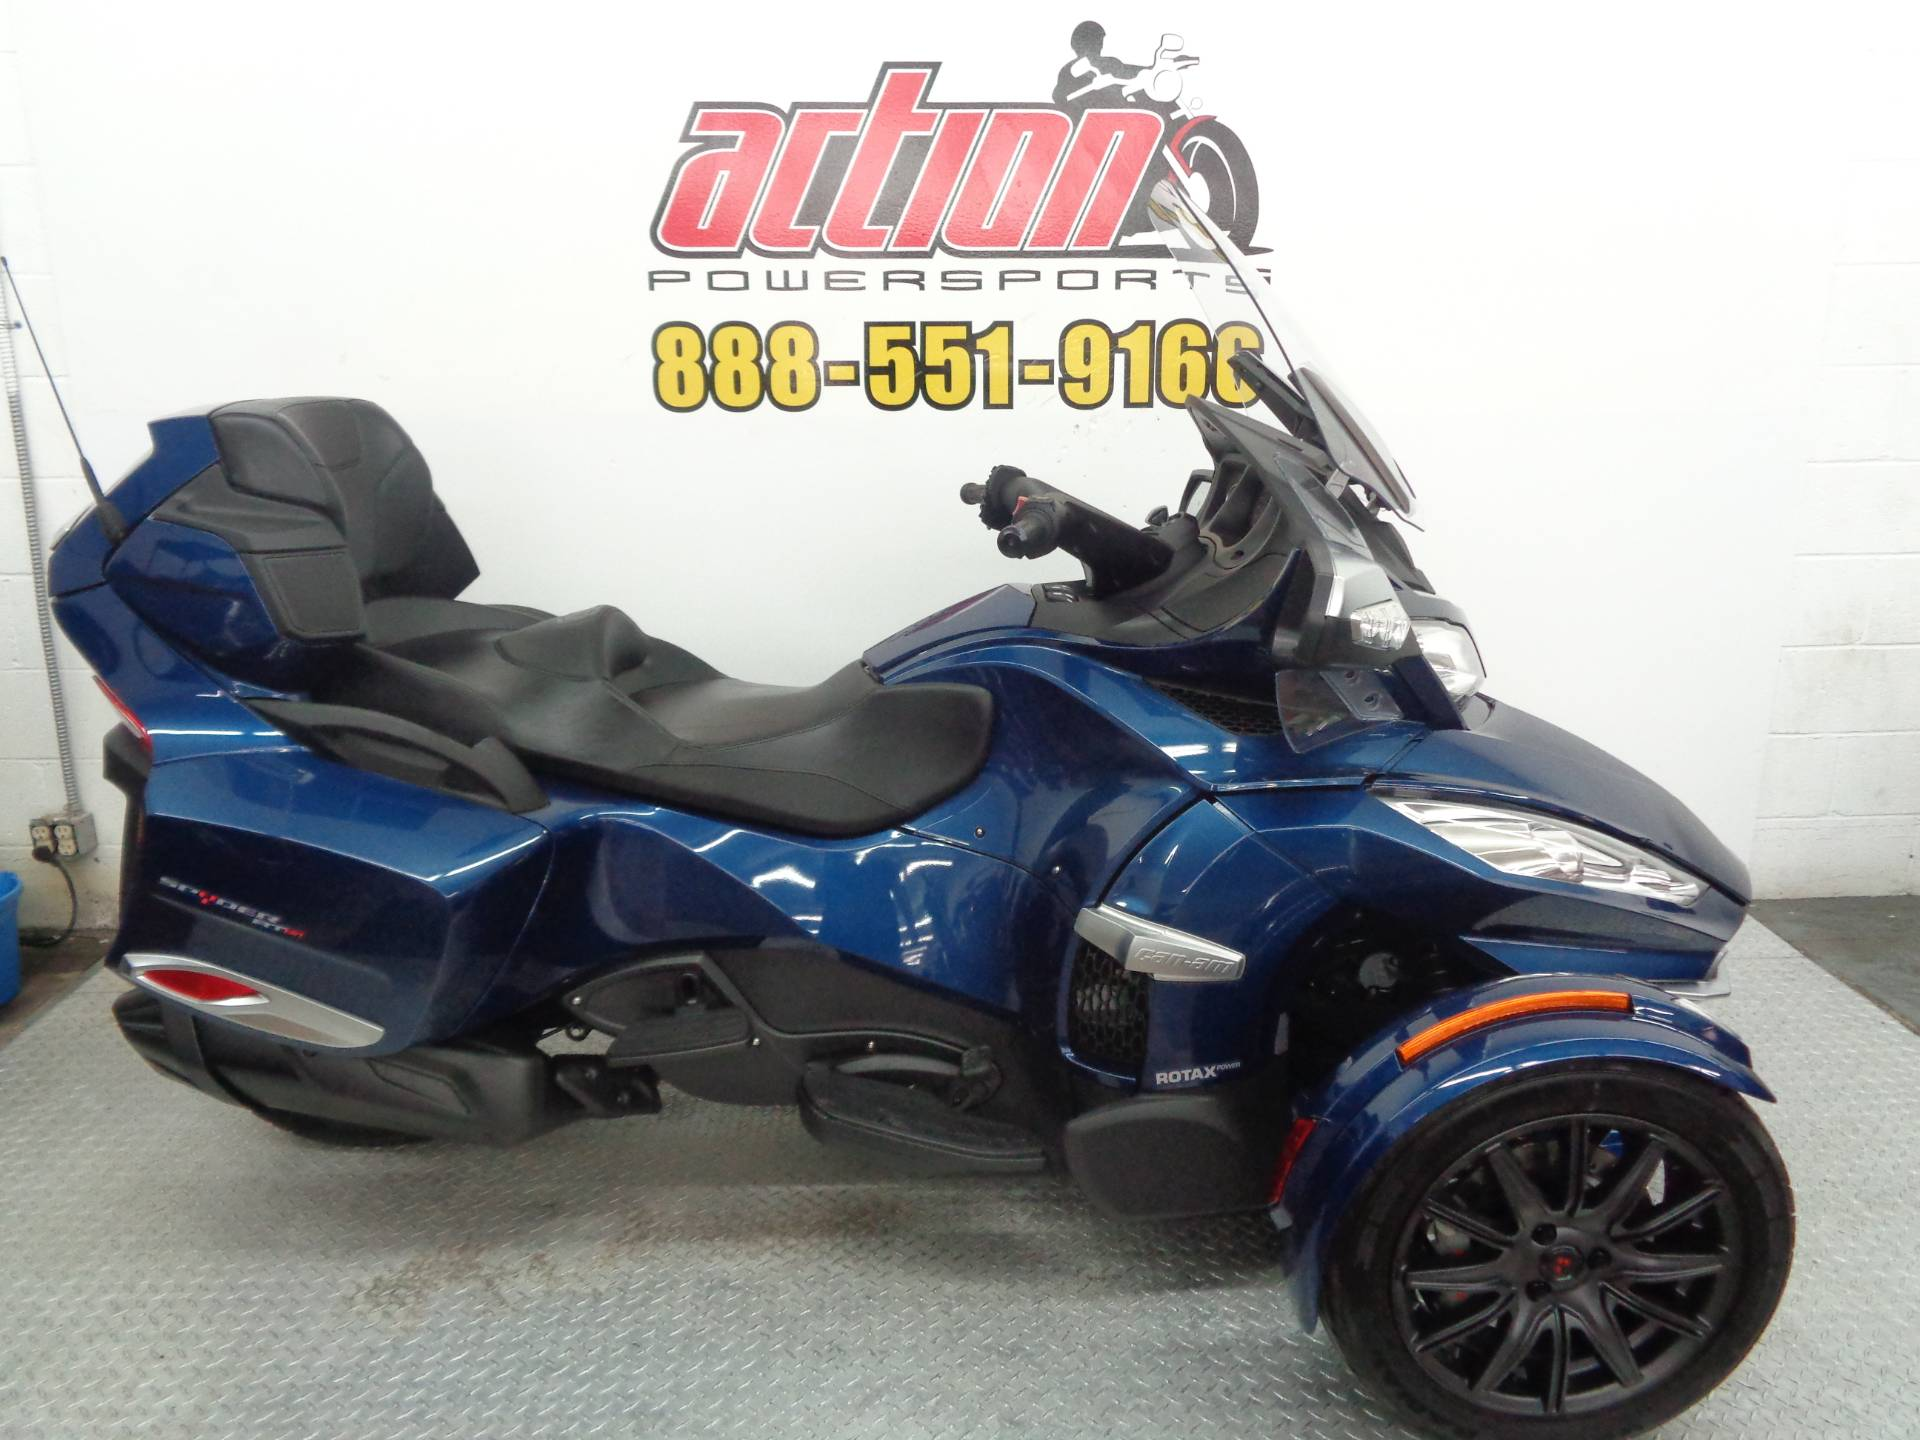 2017 Can-Am Spyder RT-S in Tulsa, Oklahoma - Photo 1